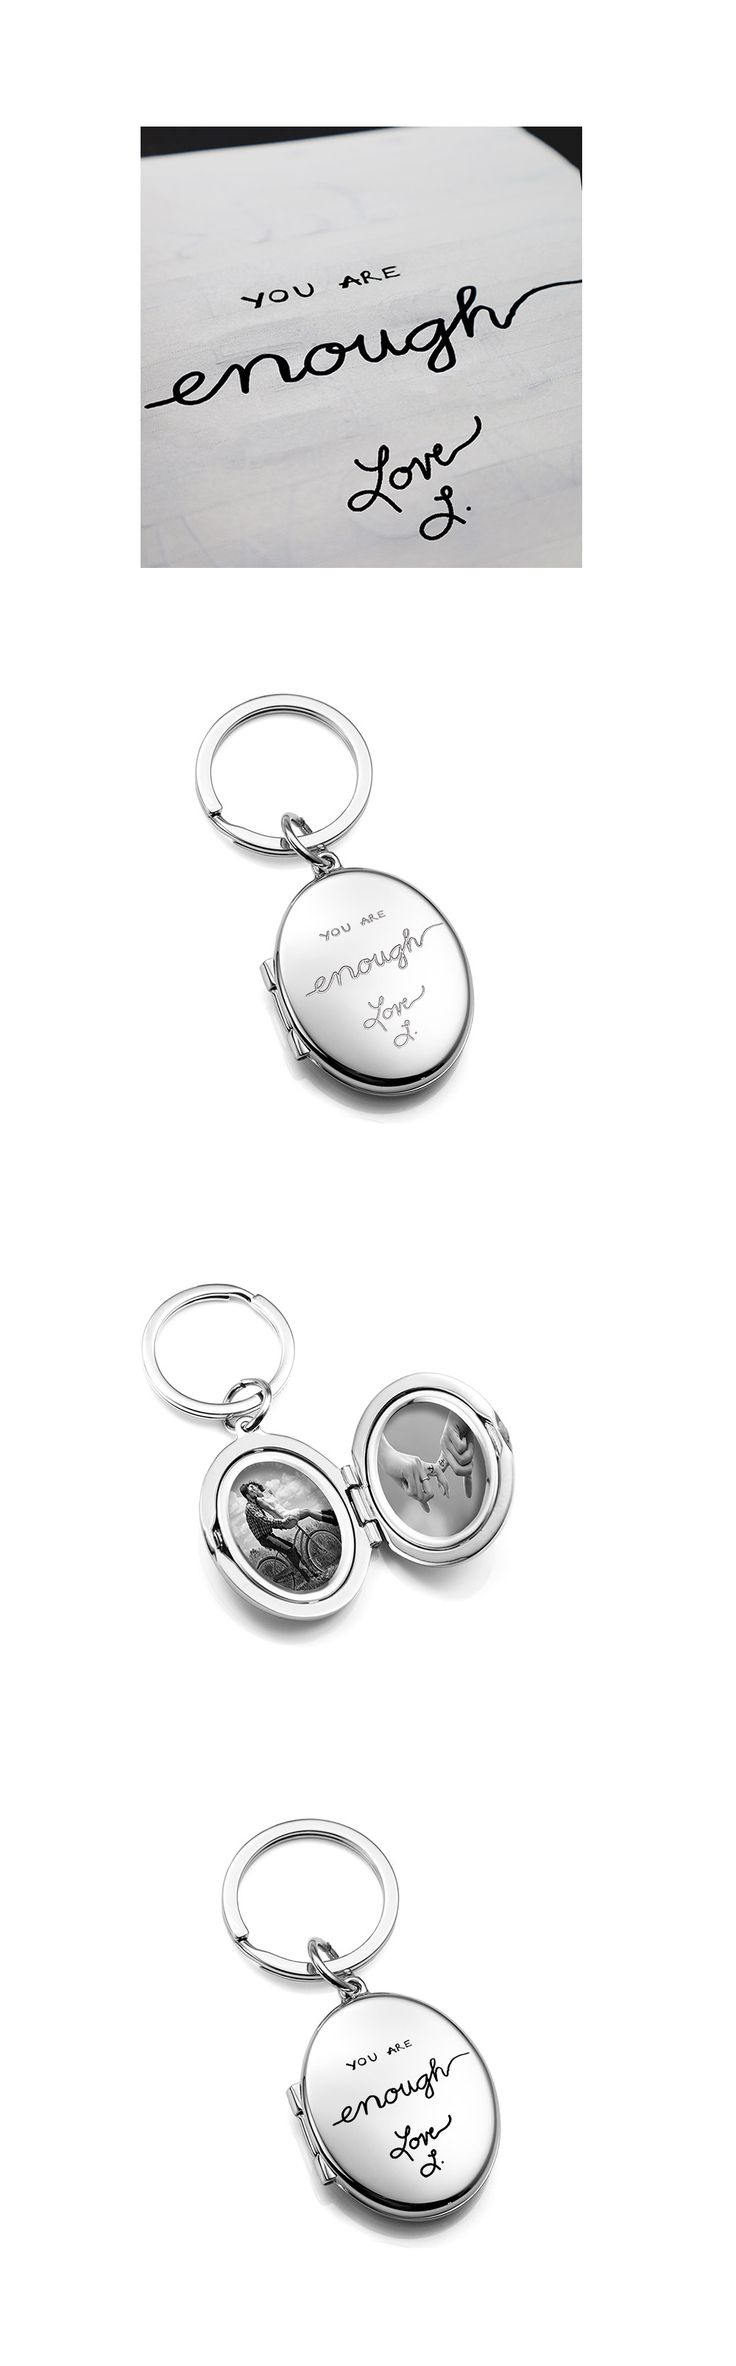 button cute pin lockets keychain basic